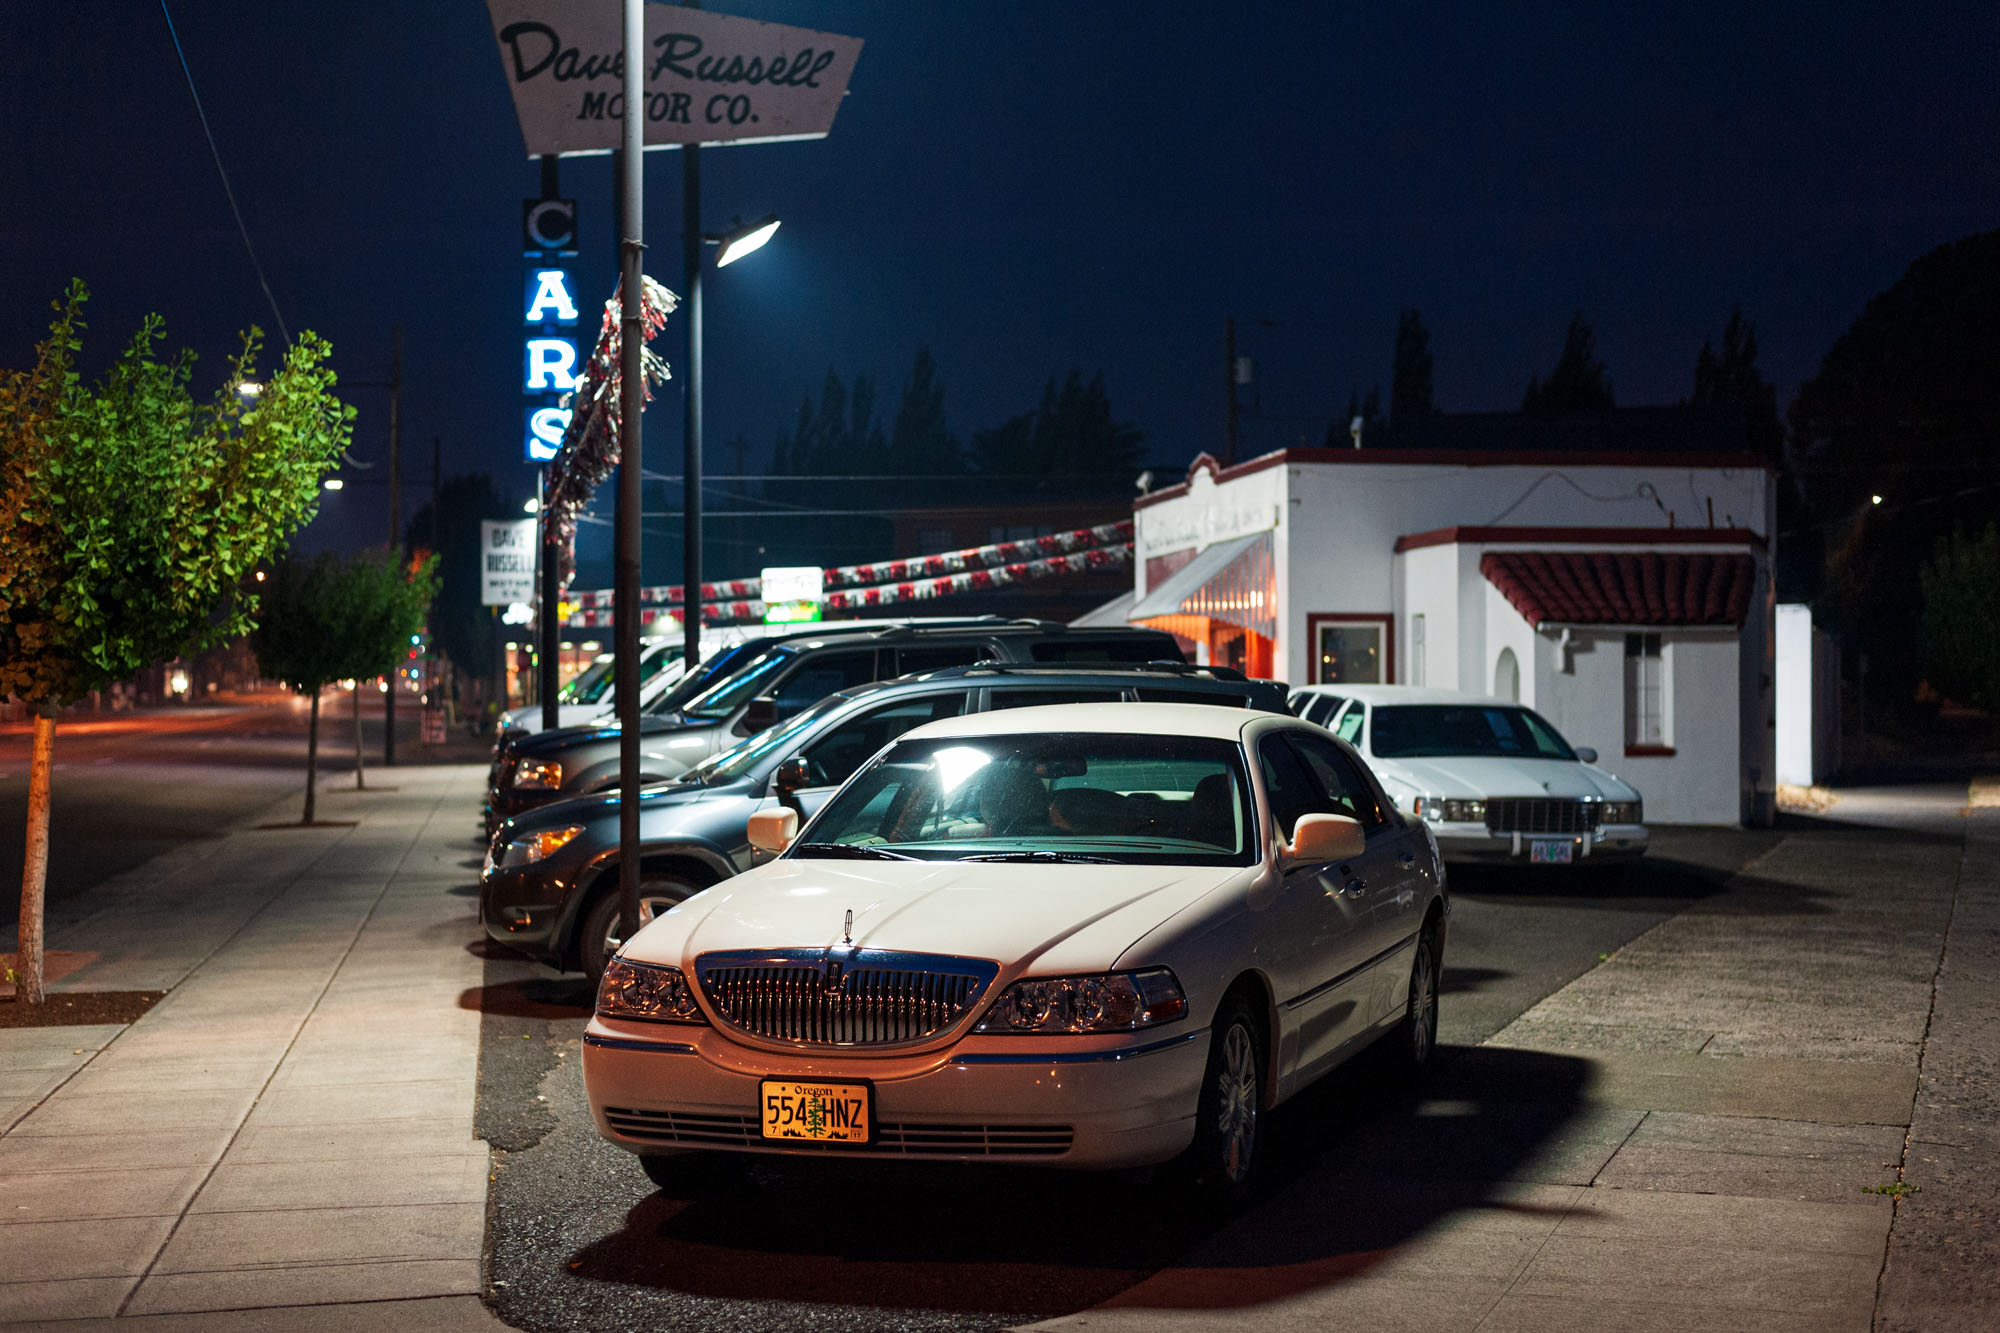 a car lot, lit brightly in the night